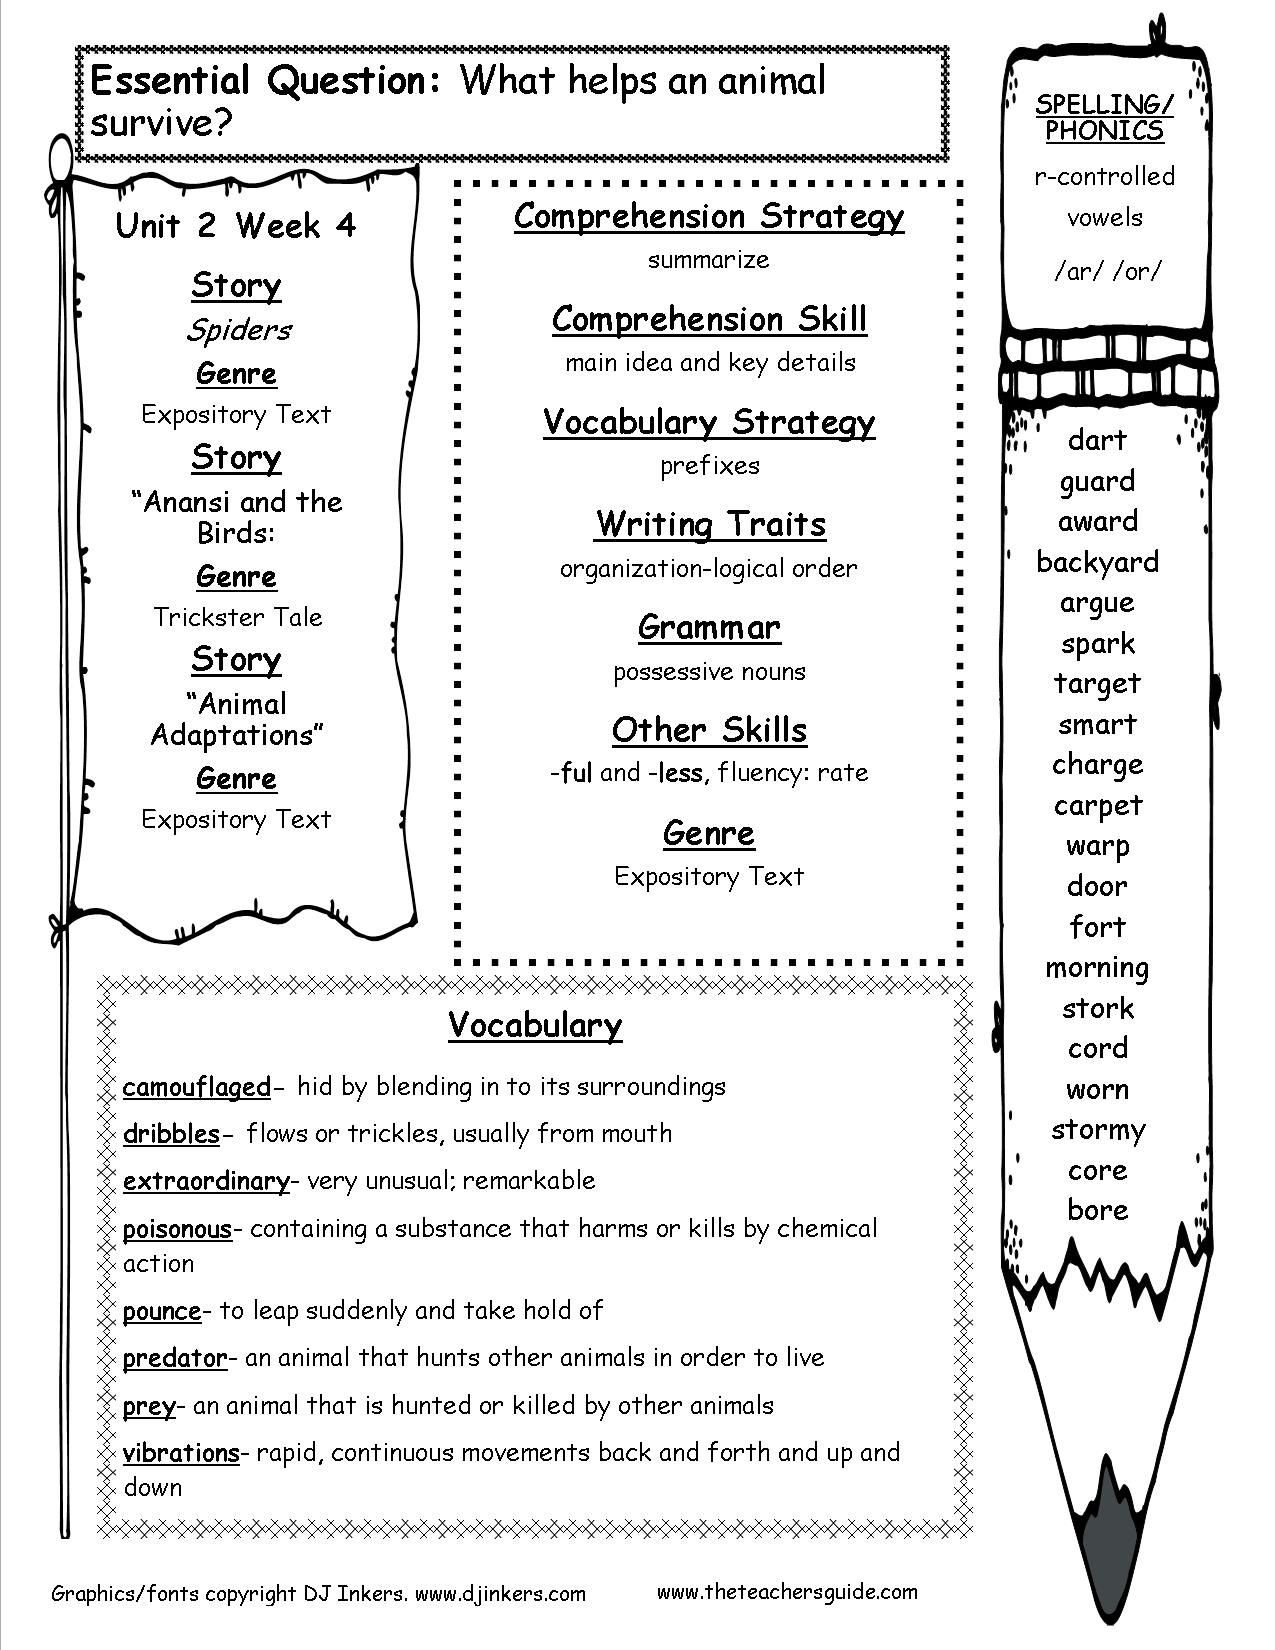 5th Grade Main Idea Worksheet Main Idea Worksheets 5th Grade for Print Math Worksheet On